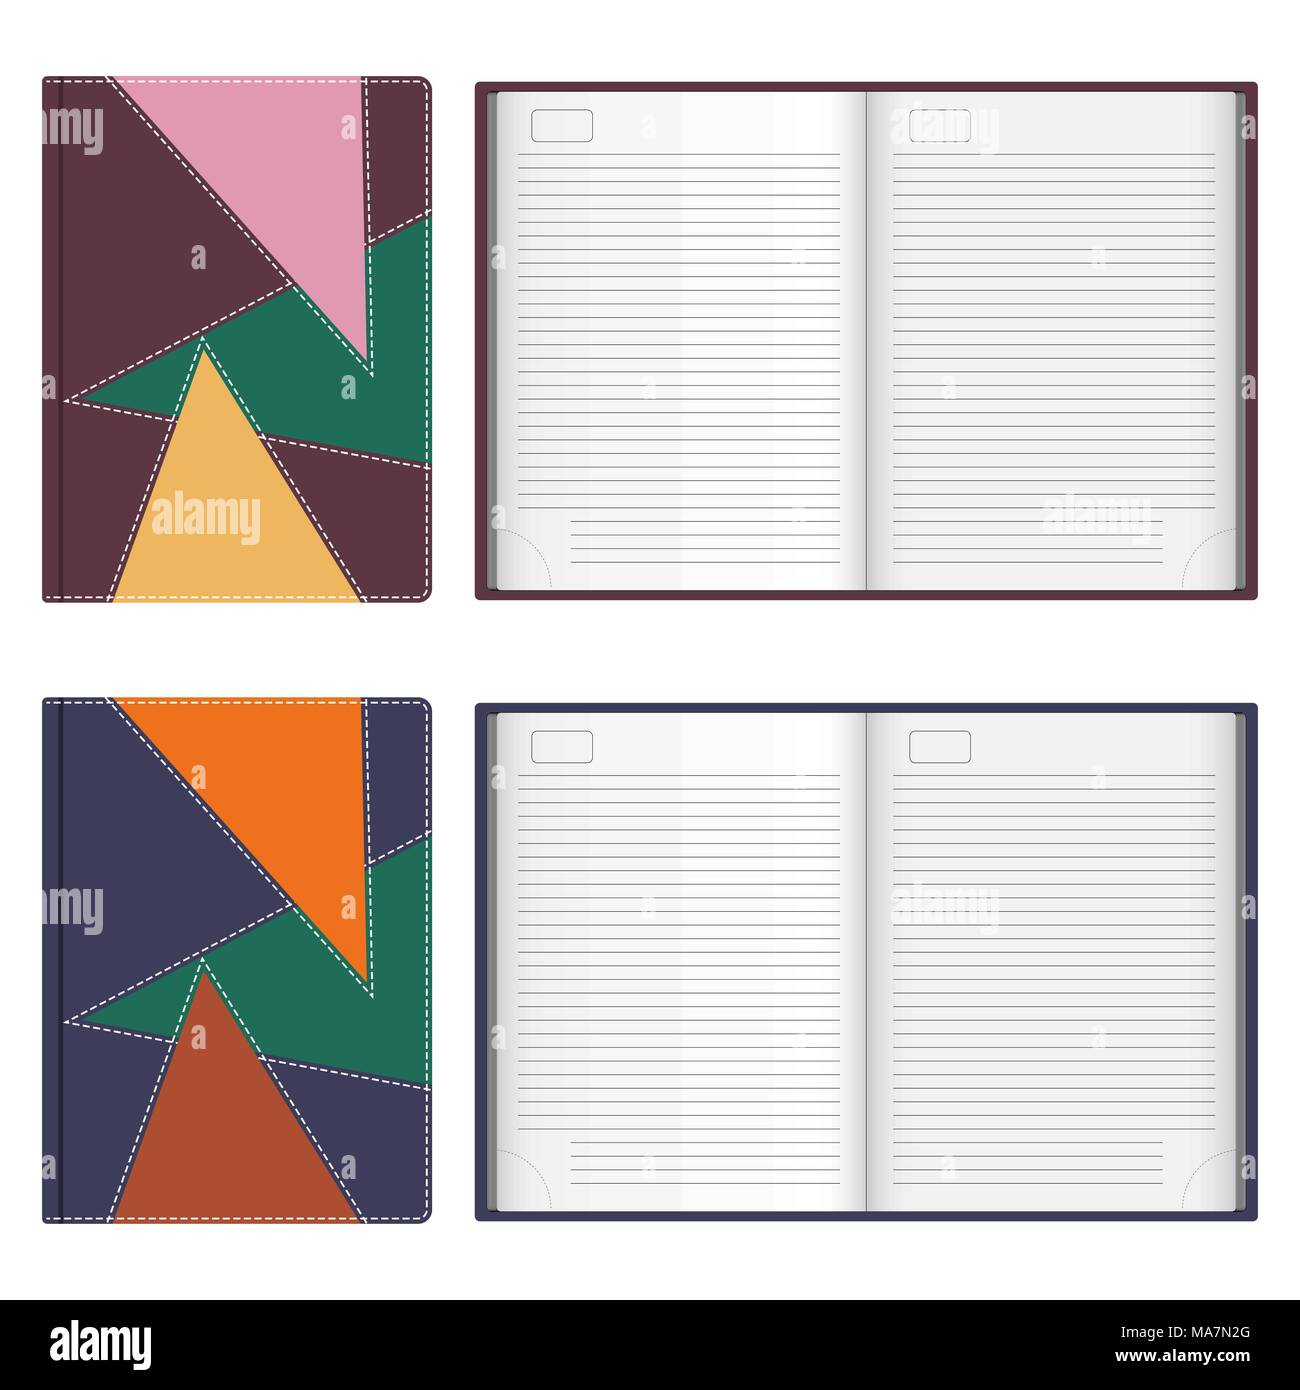 Collection of stylish leather diaries covers, stitched with white thread, open and closed. Vector illustration in flat style, isolated on white backgr - Stock Image